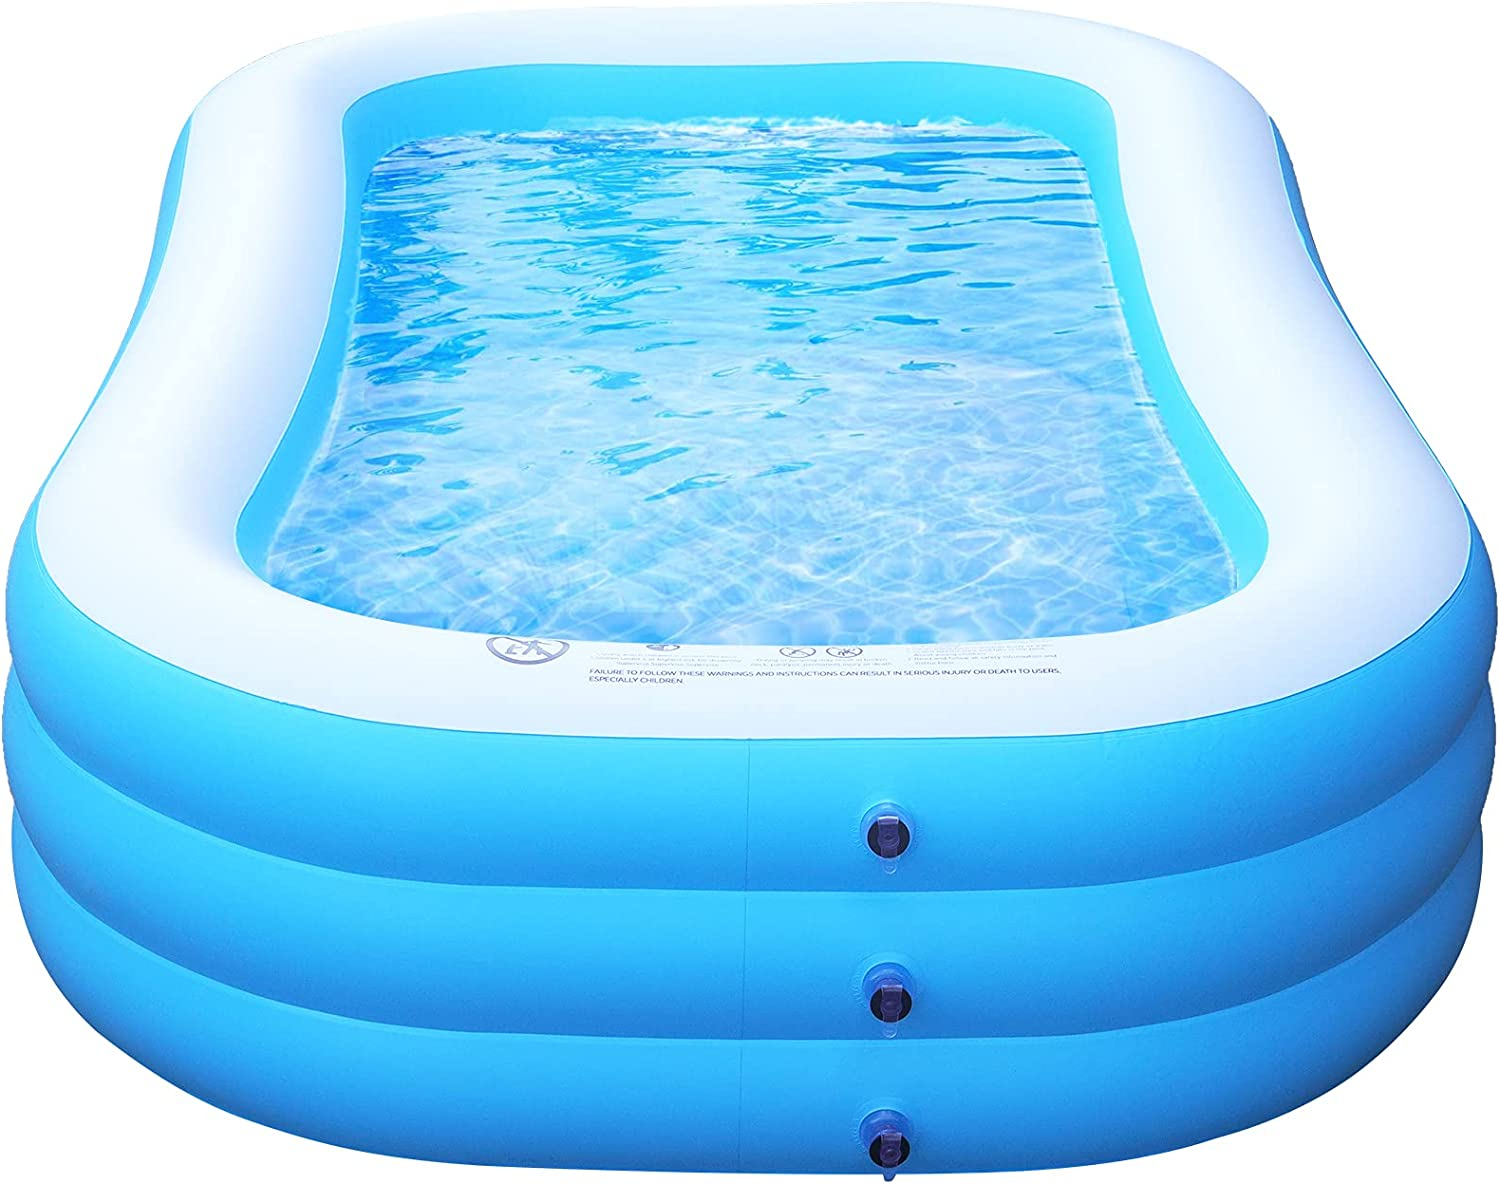 efubaby Direct sale of manufacturer Inflatable Pool Kid Pools Swimming Toddl Selling and selling